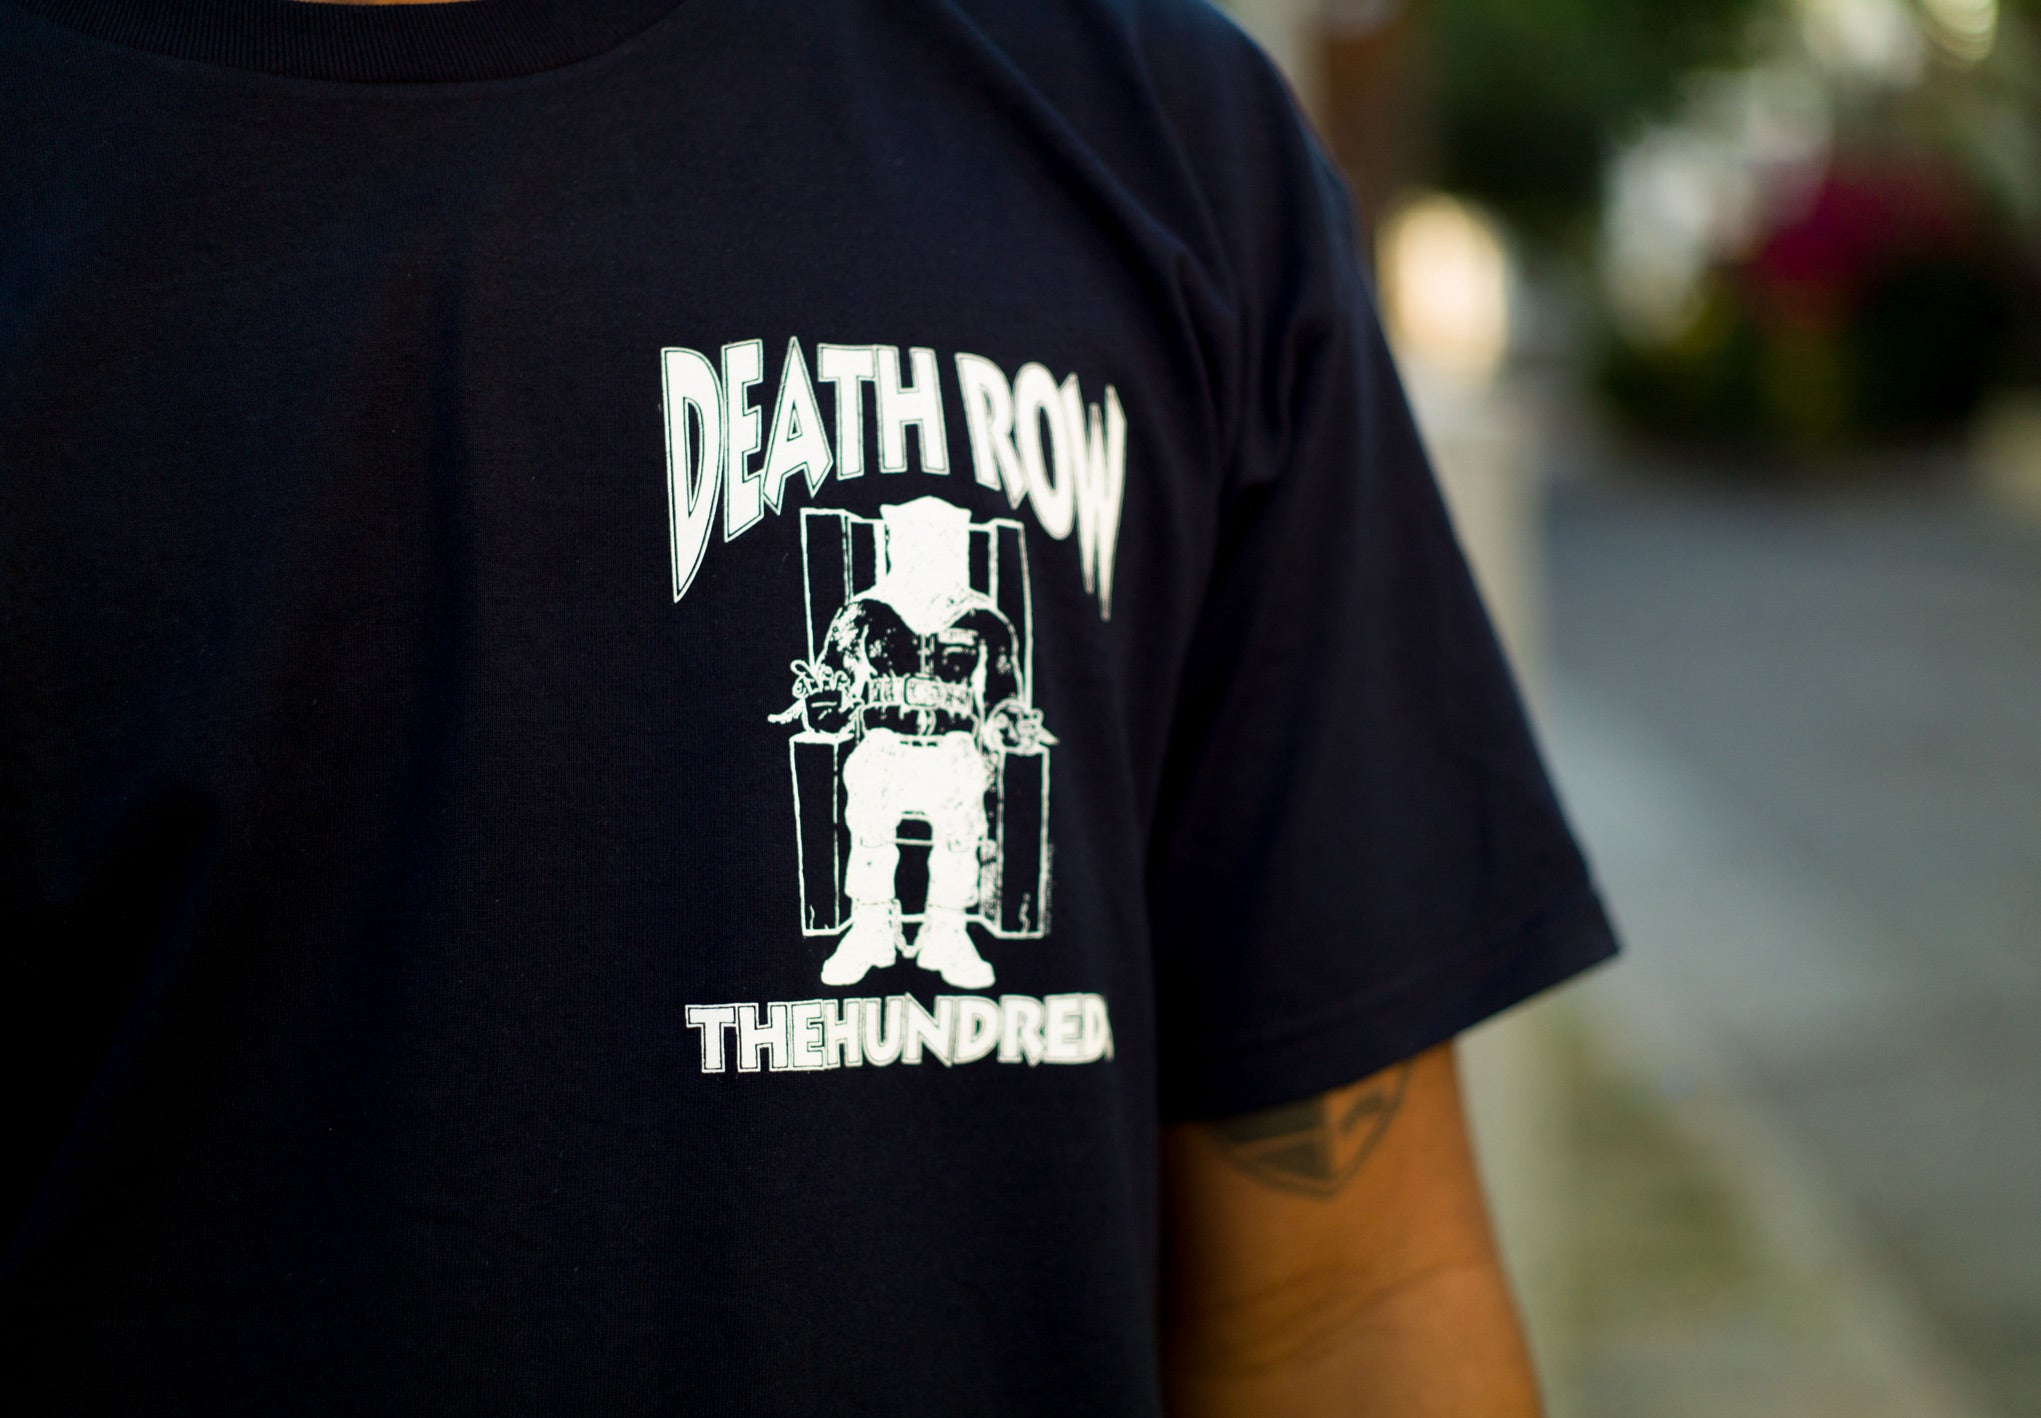 The Hundreds Death Row Crest T Shirt